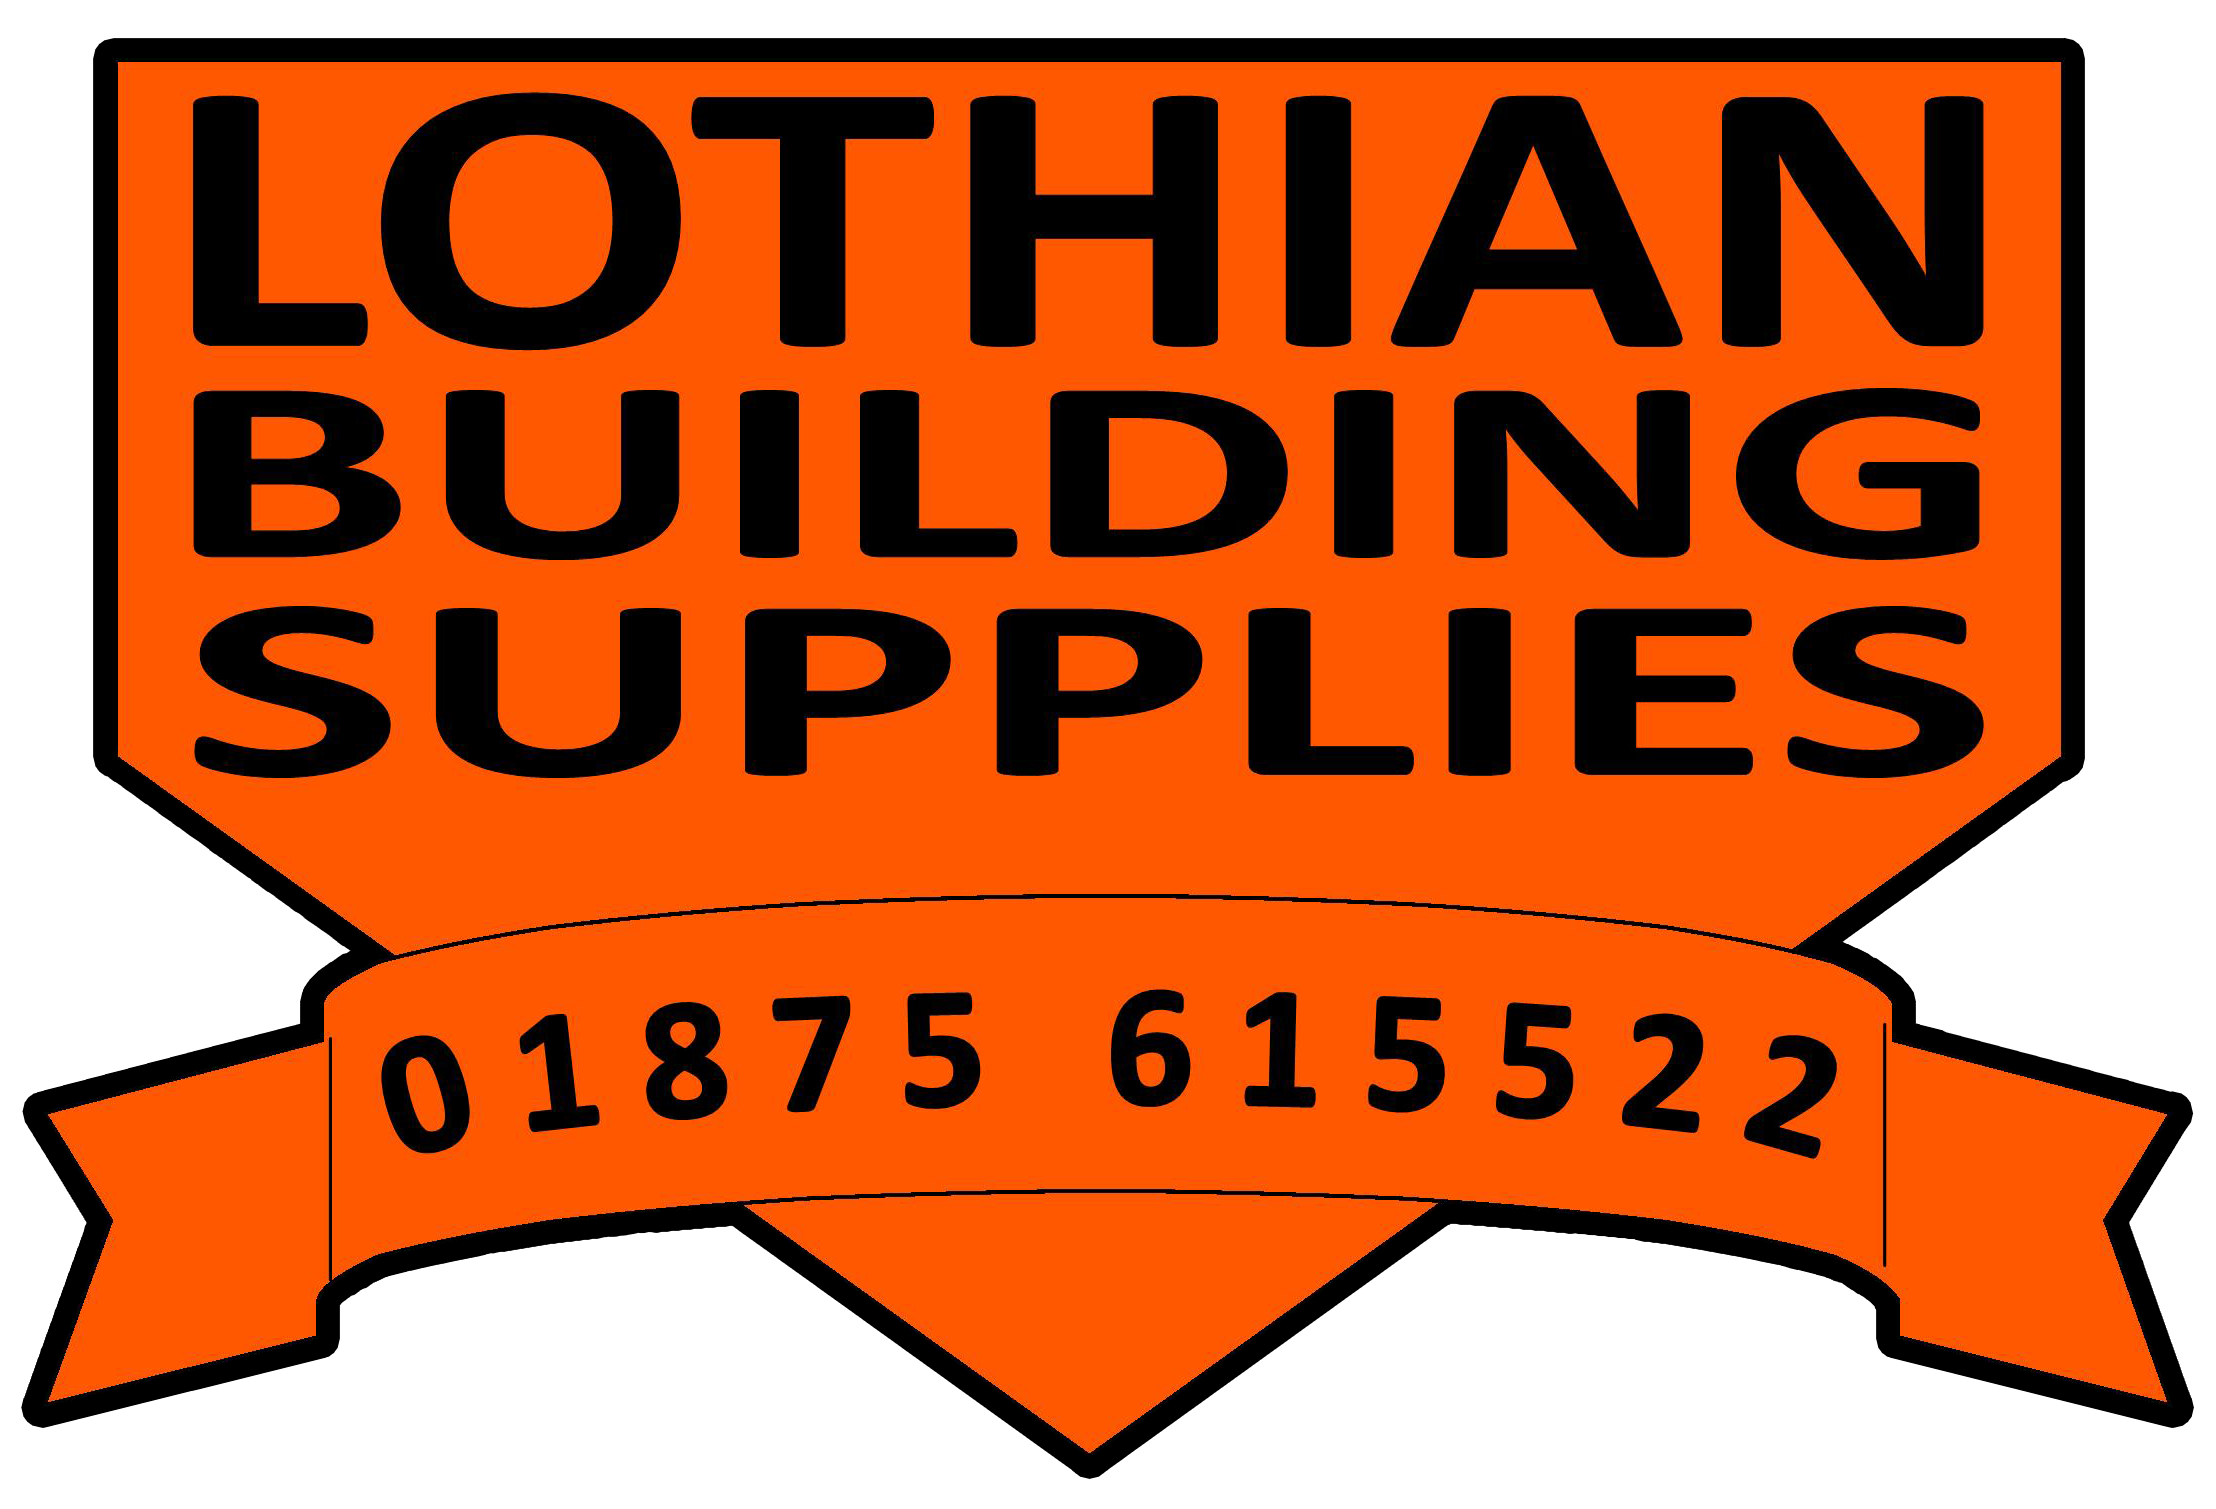 Lothian Building Supplies